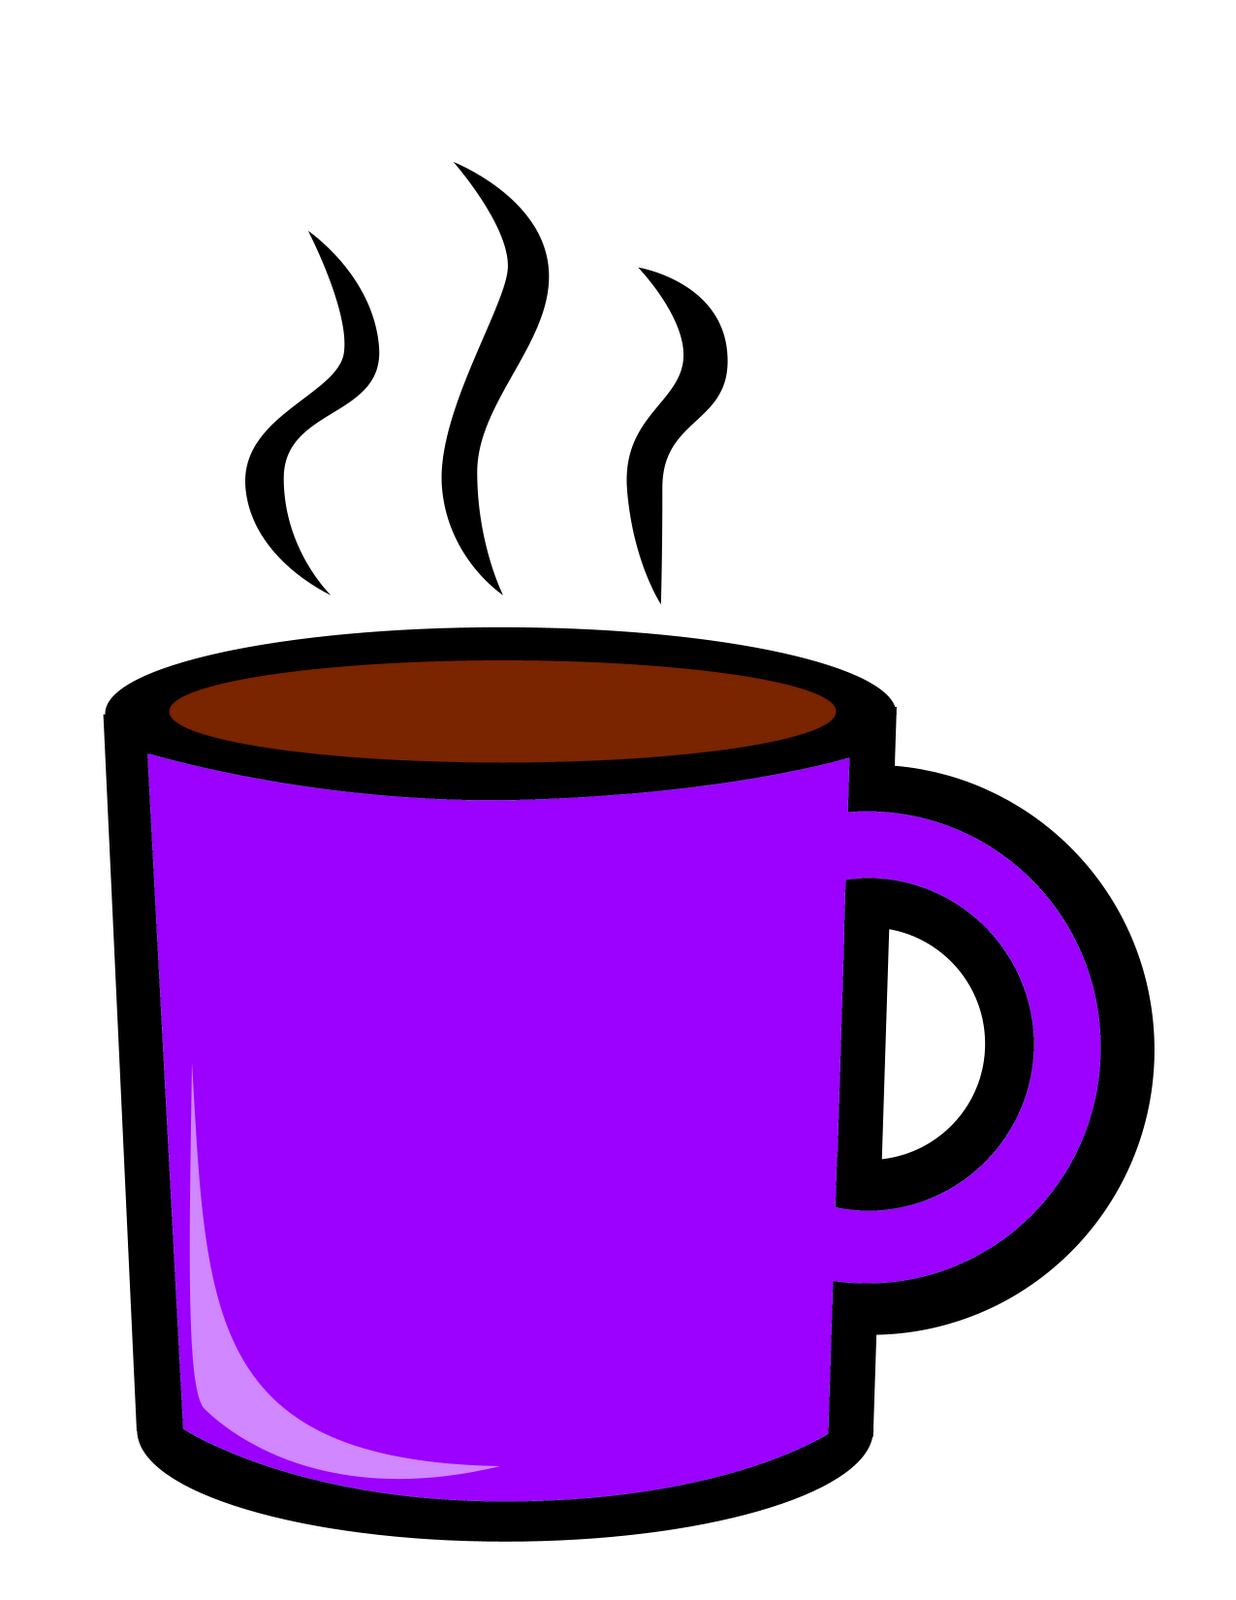 Gourmet hot cocoa . Heat clipart object